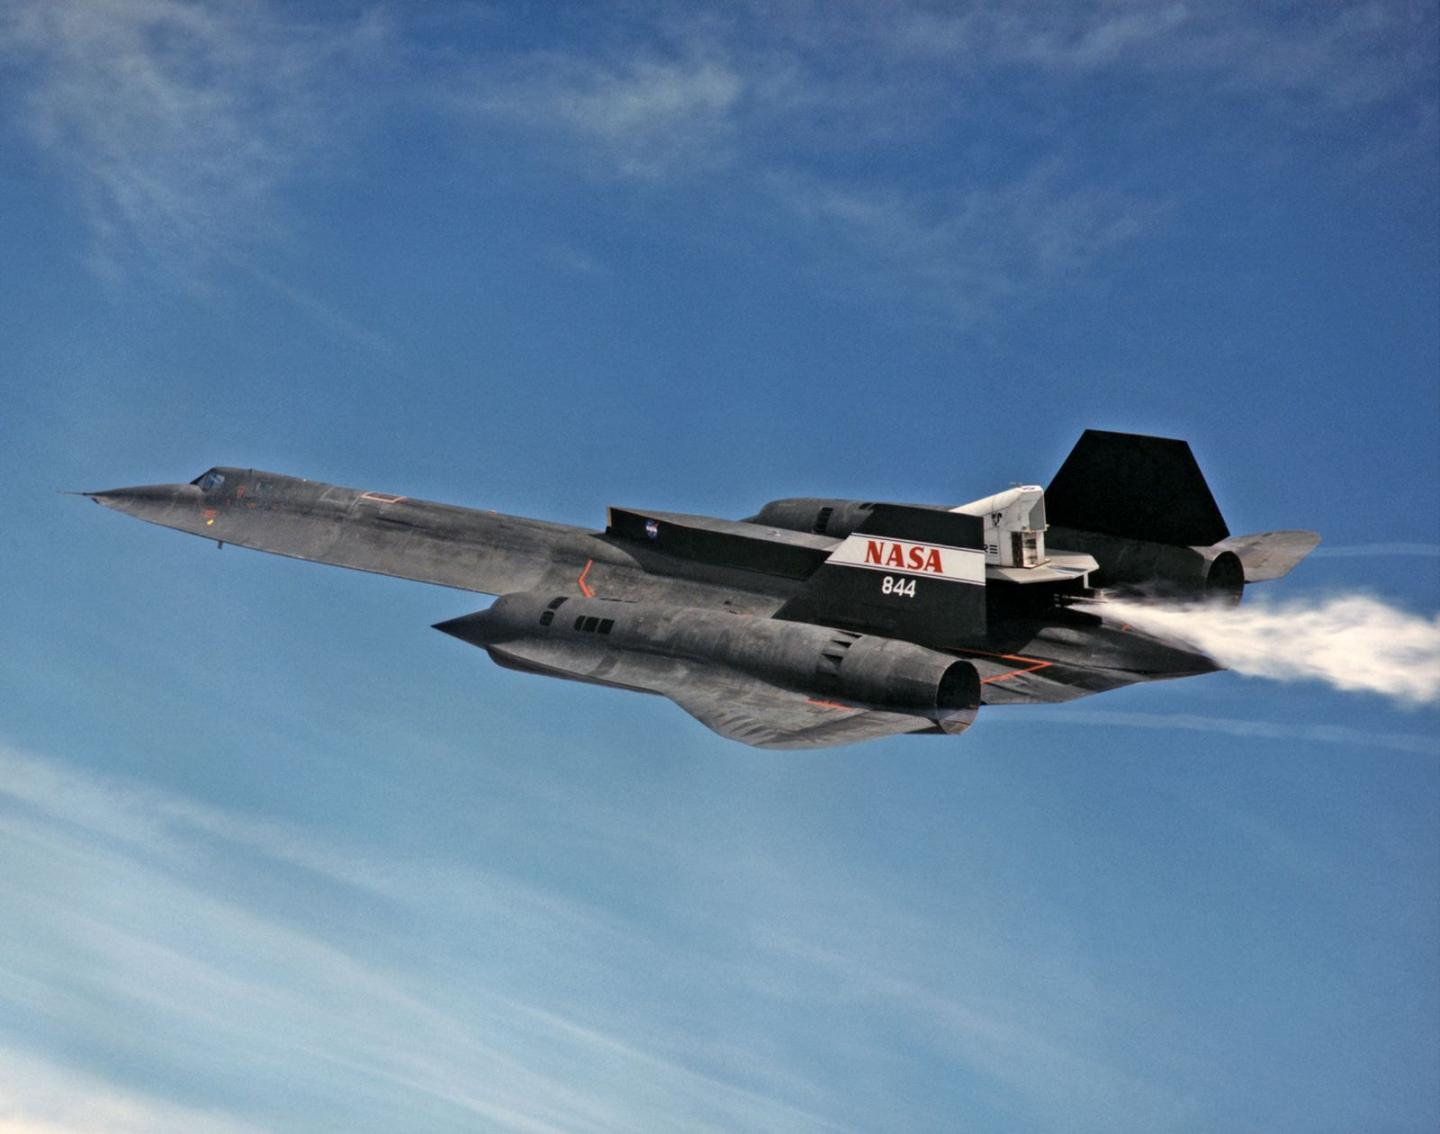 The Story of How Americas Mach 3 SR-71 Spy Plane Out Ran Missiles